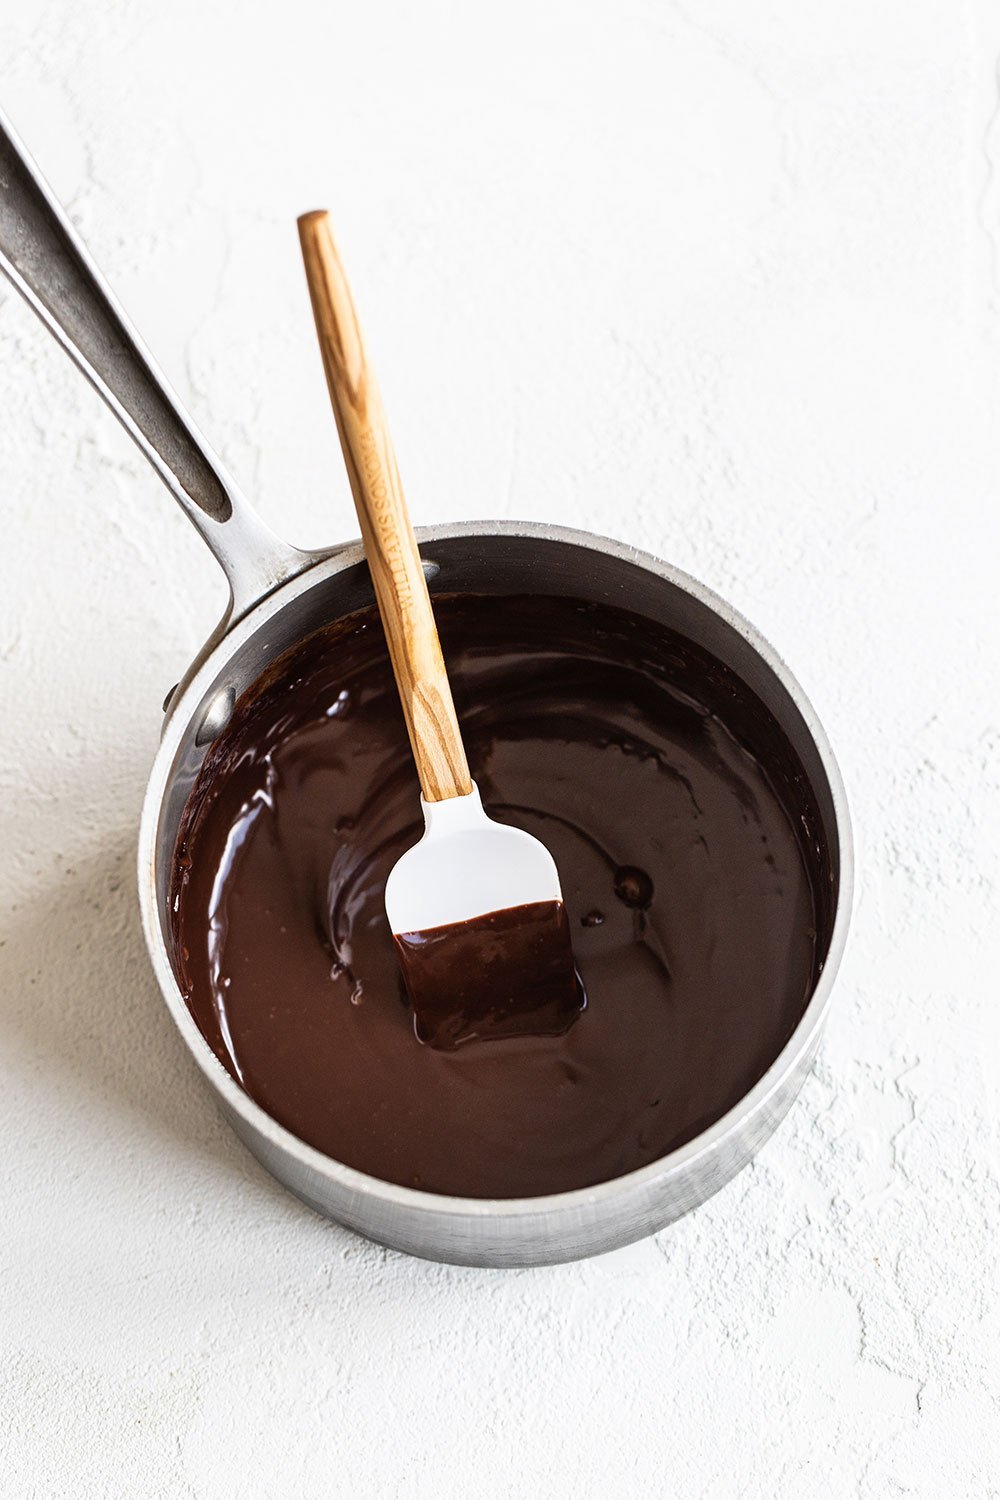 Chocolate ganache in a saucepan